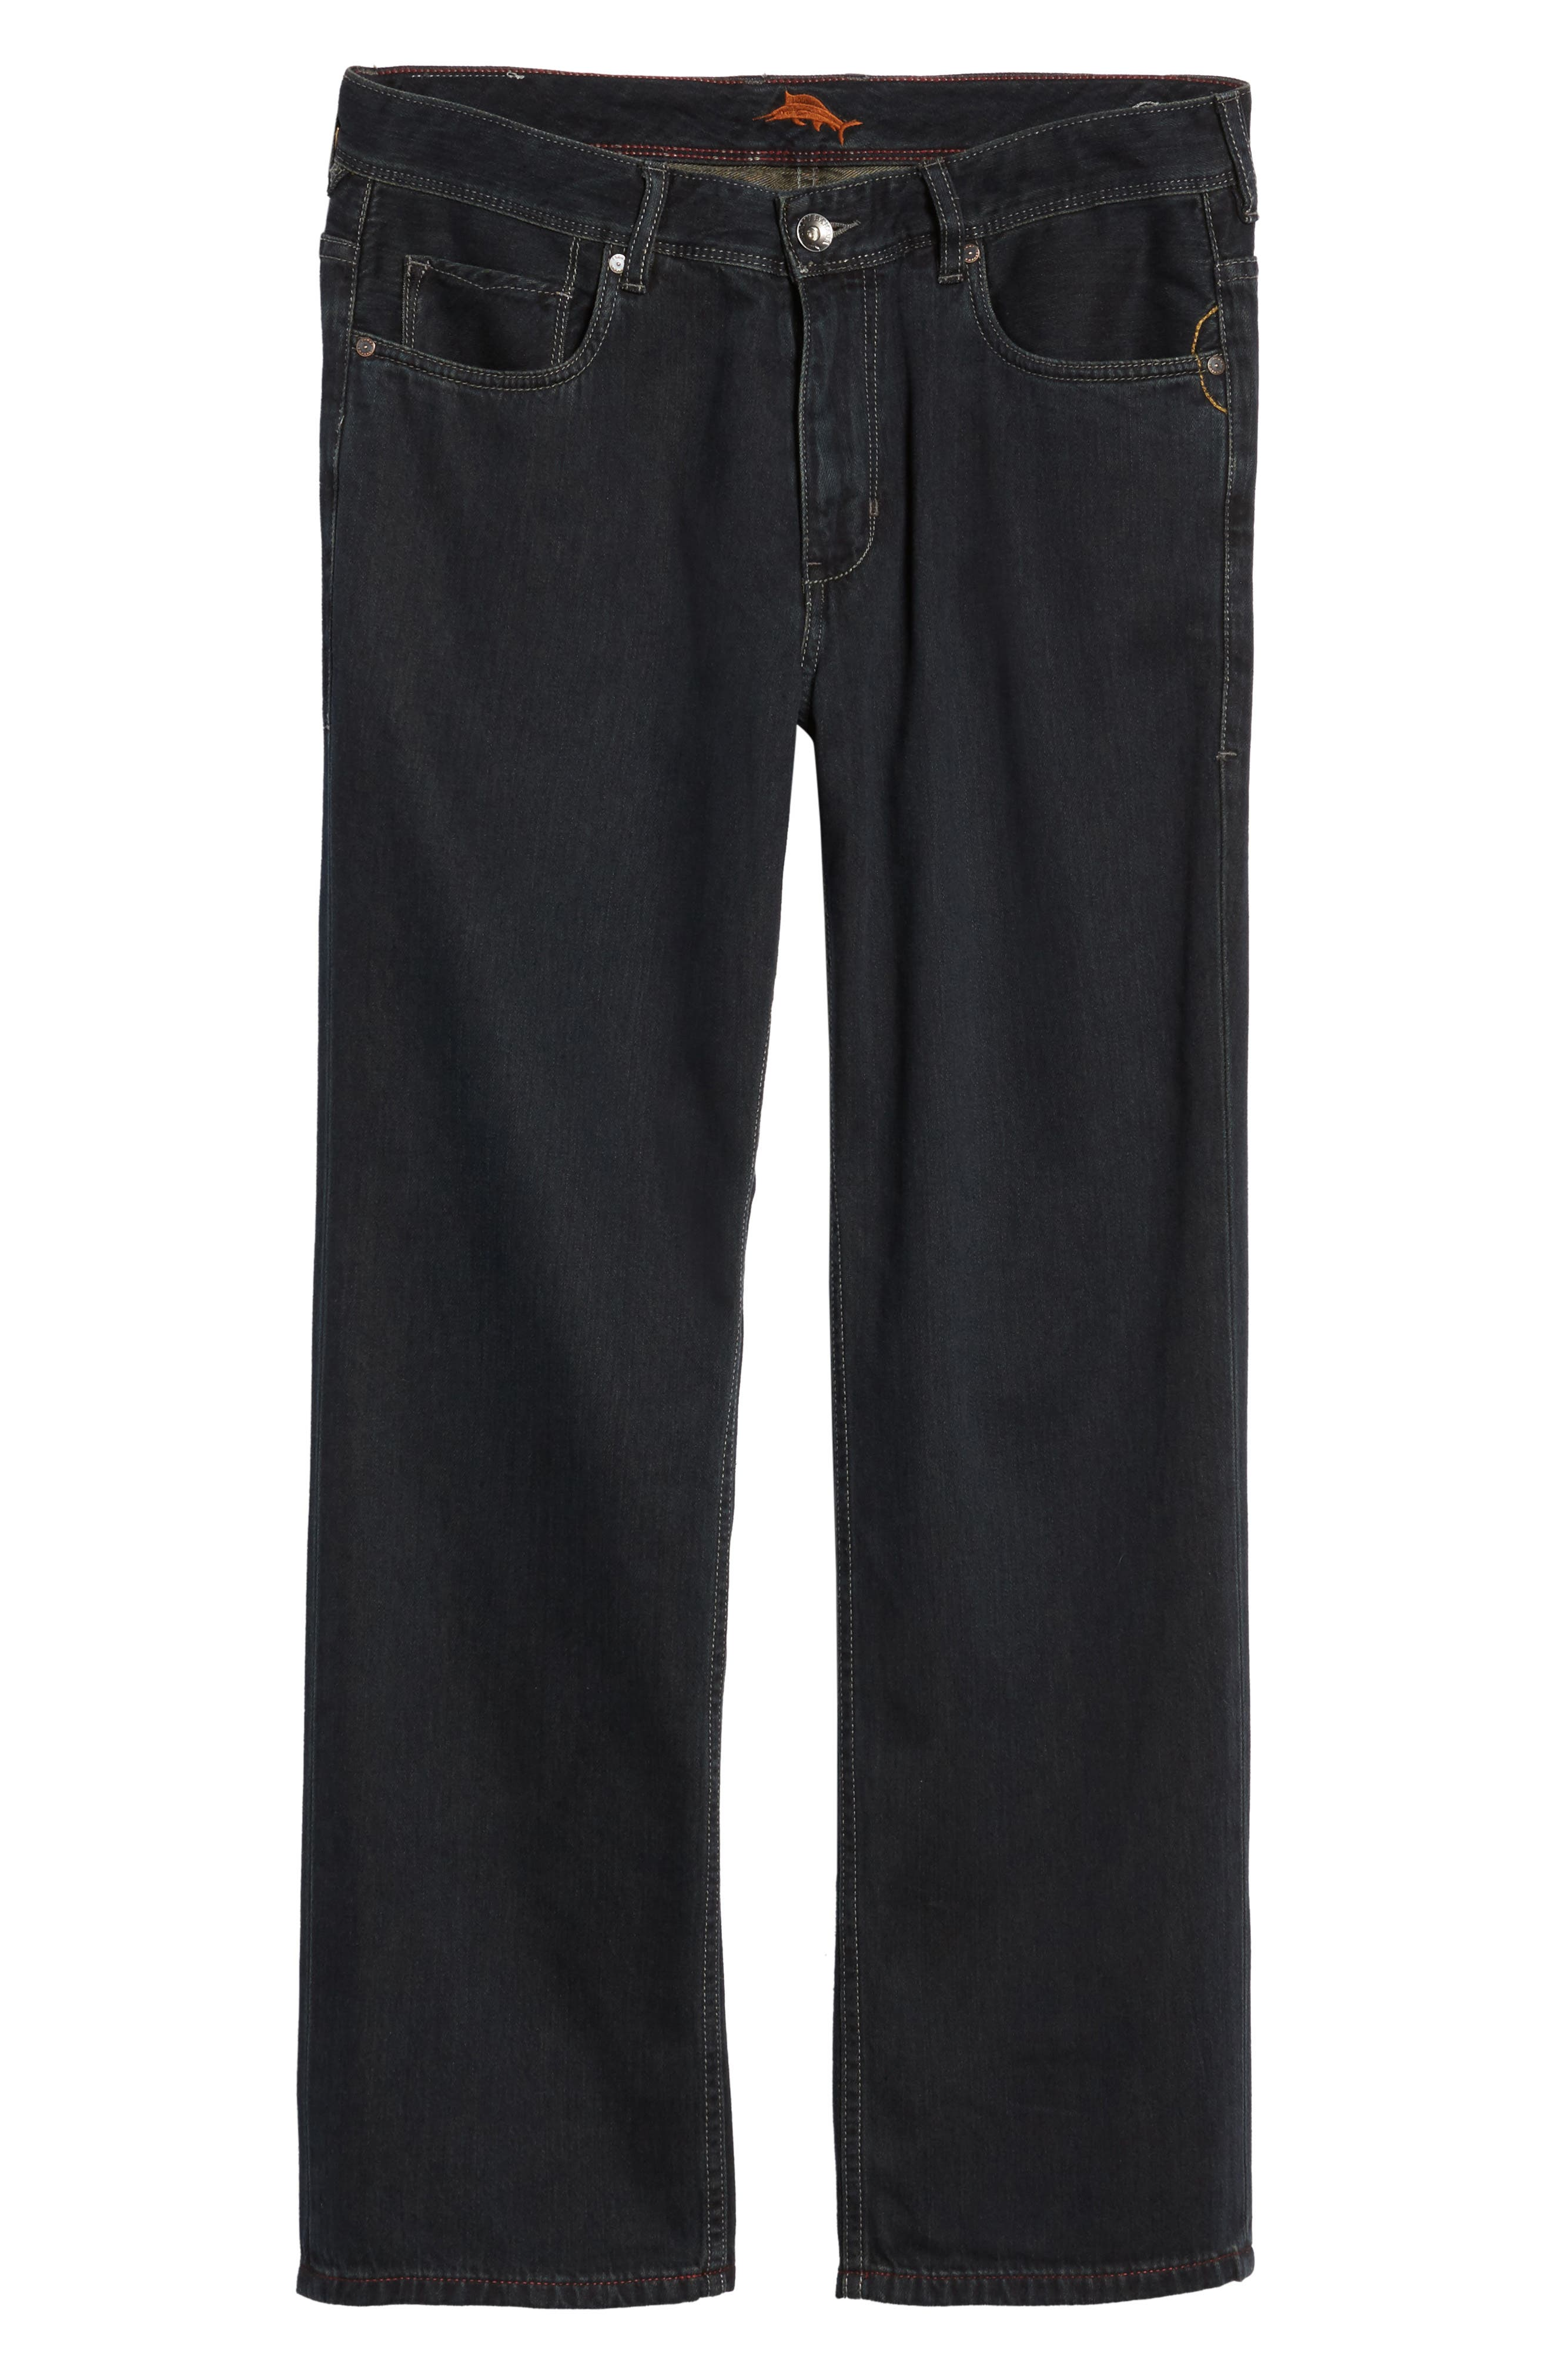 'Caymen' Relaxed Fit Straight Leg Jeans,                             Main thumbnail 1, color,                             Black Overdye